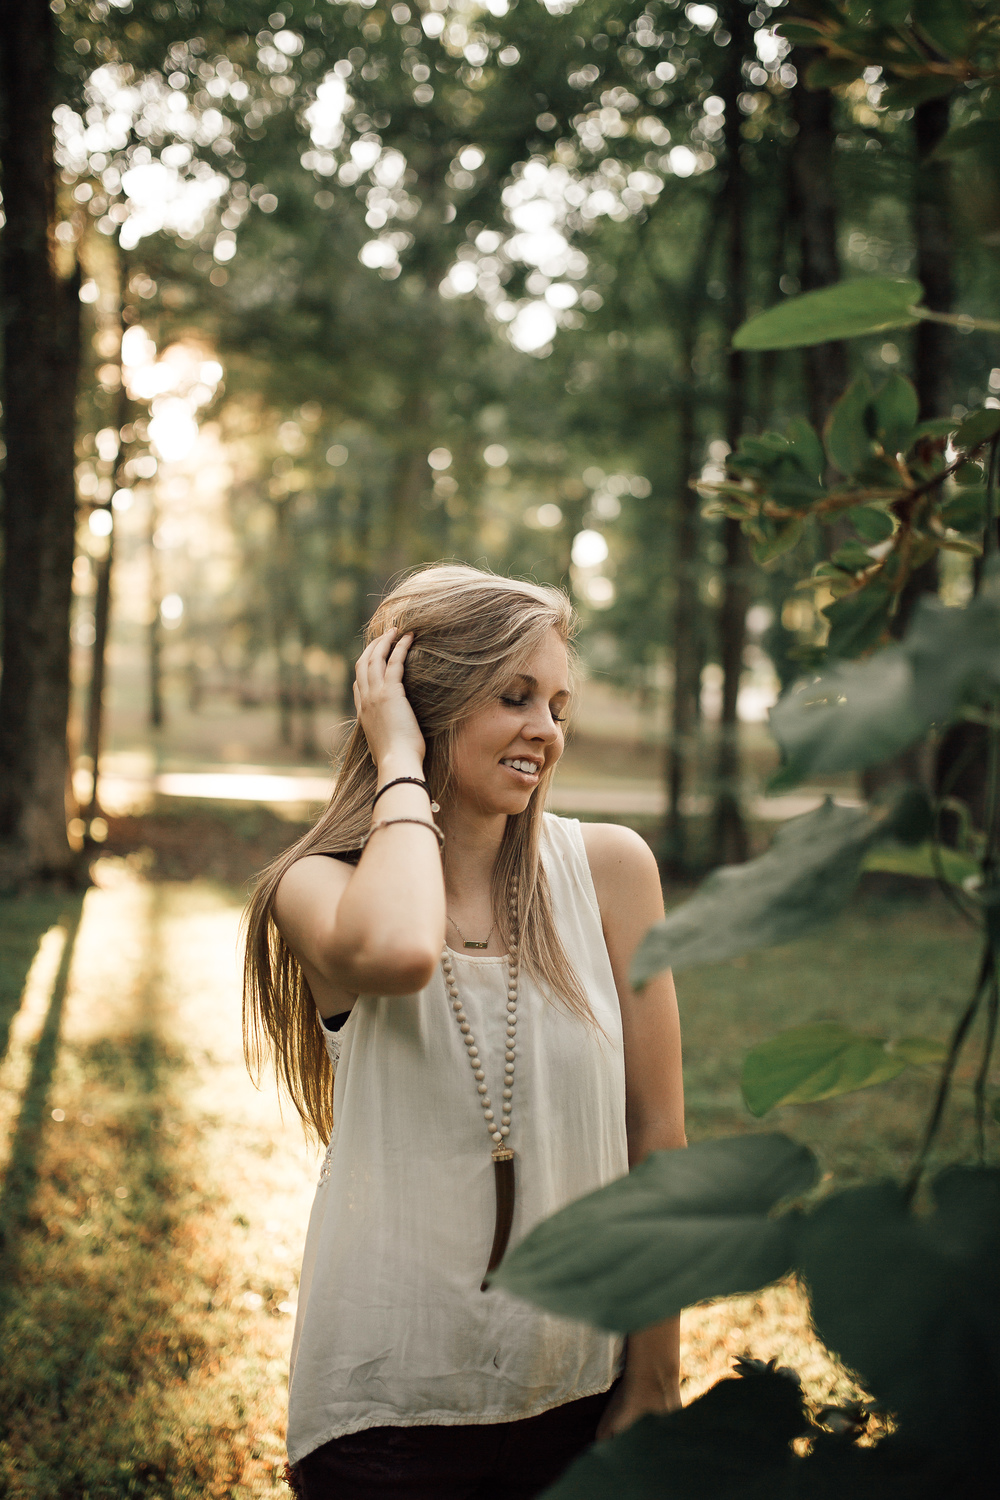 cassie-cook-photography-memphis-senior-photographer-outdoors-senior-pictures-olive-branch-ms